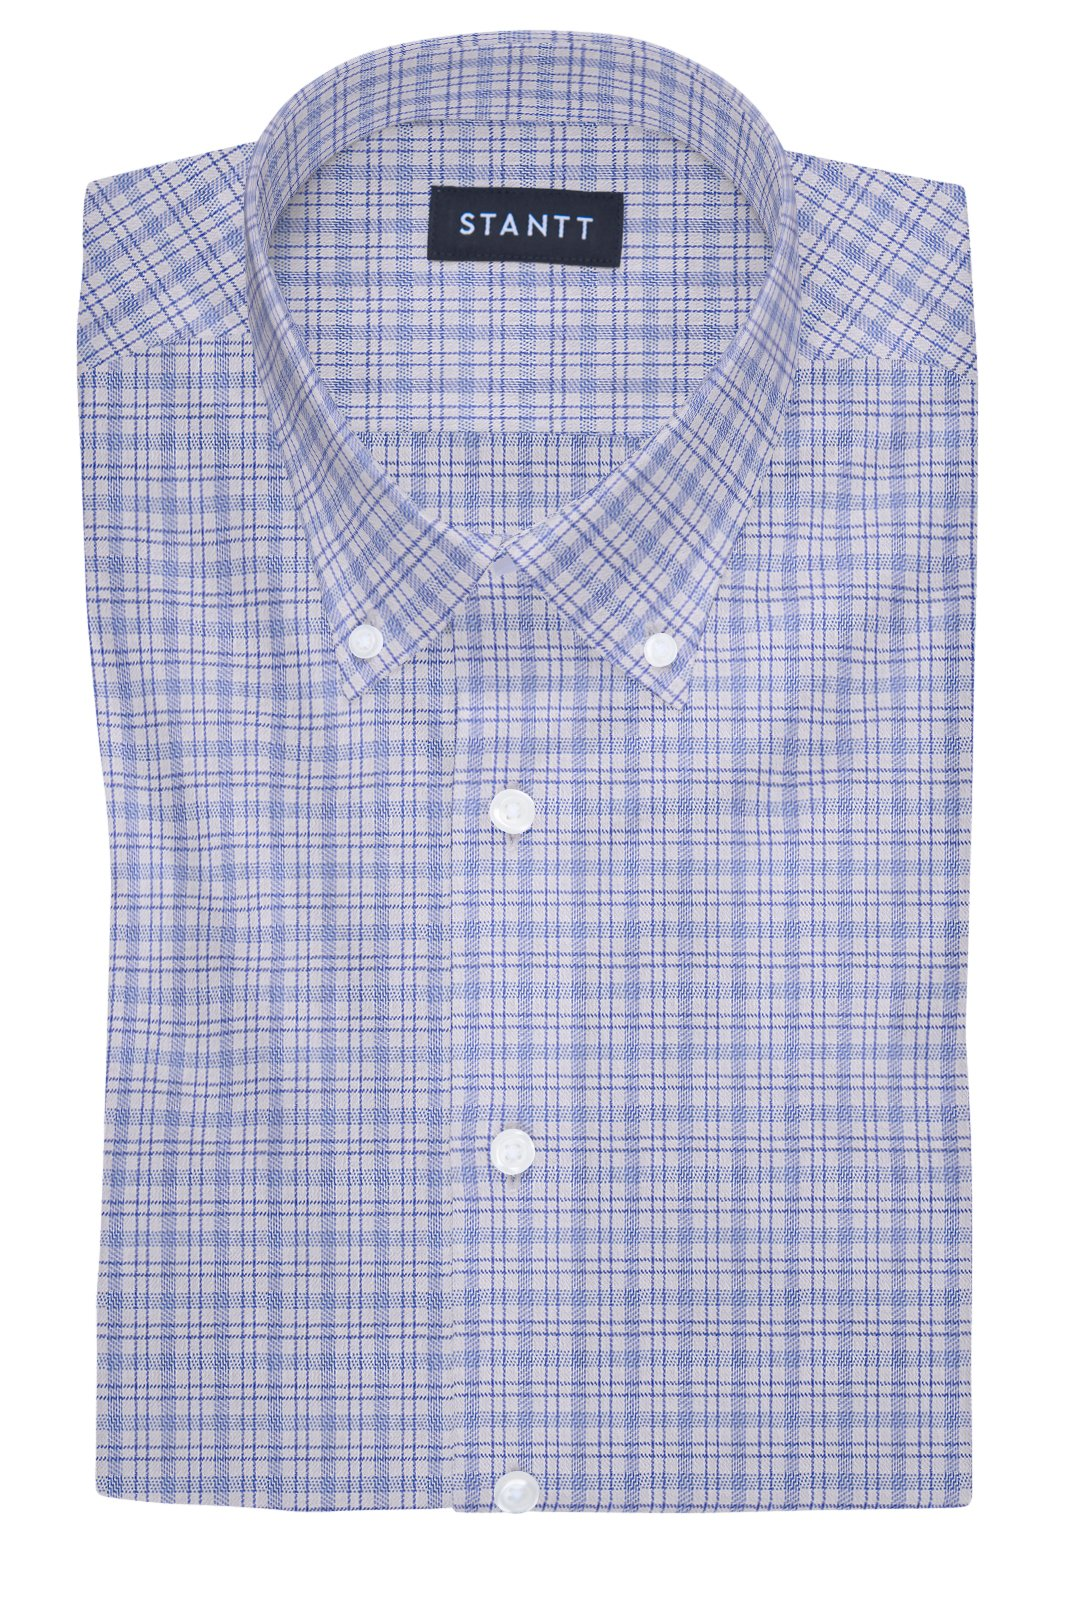 Performance Blue Sport Check: Button-Down Collar, Barrel Cuff